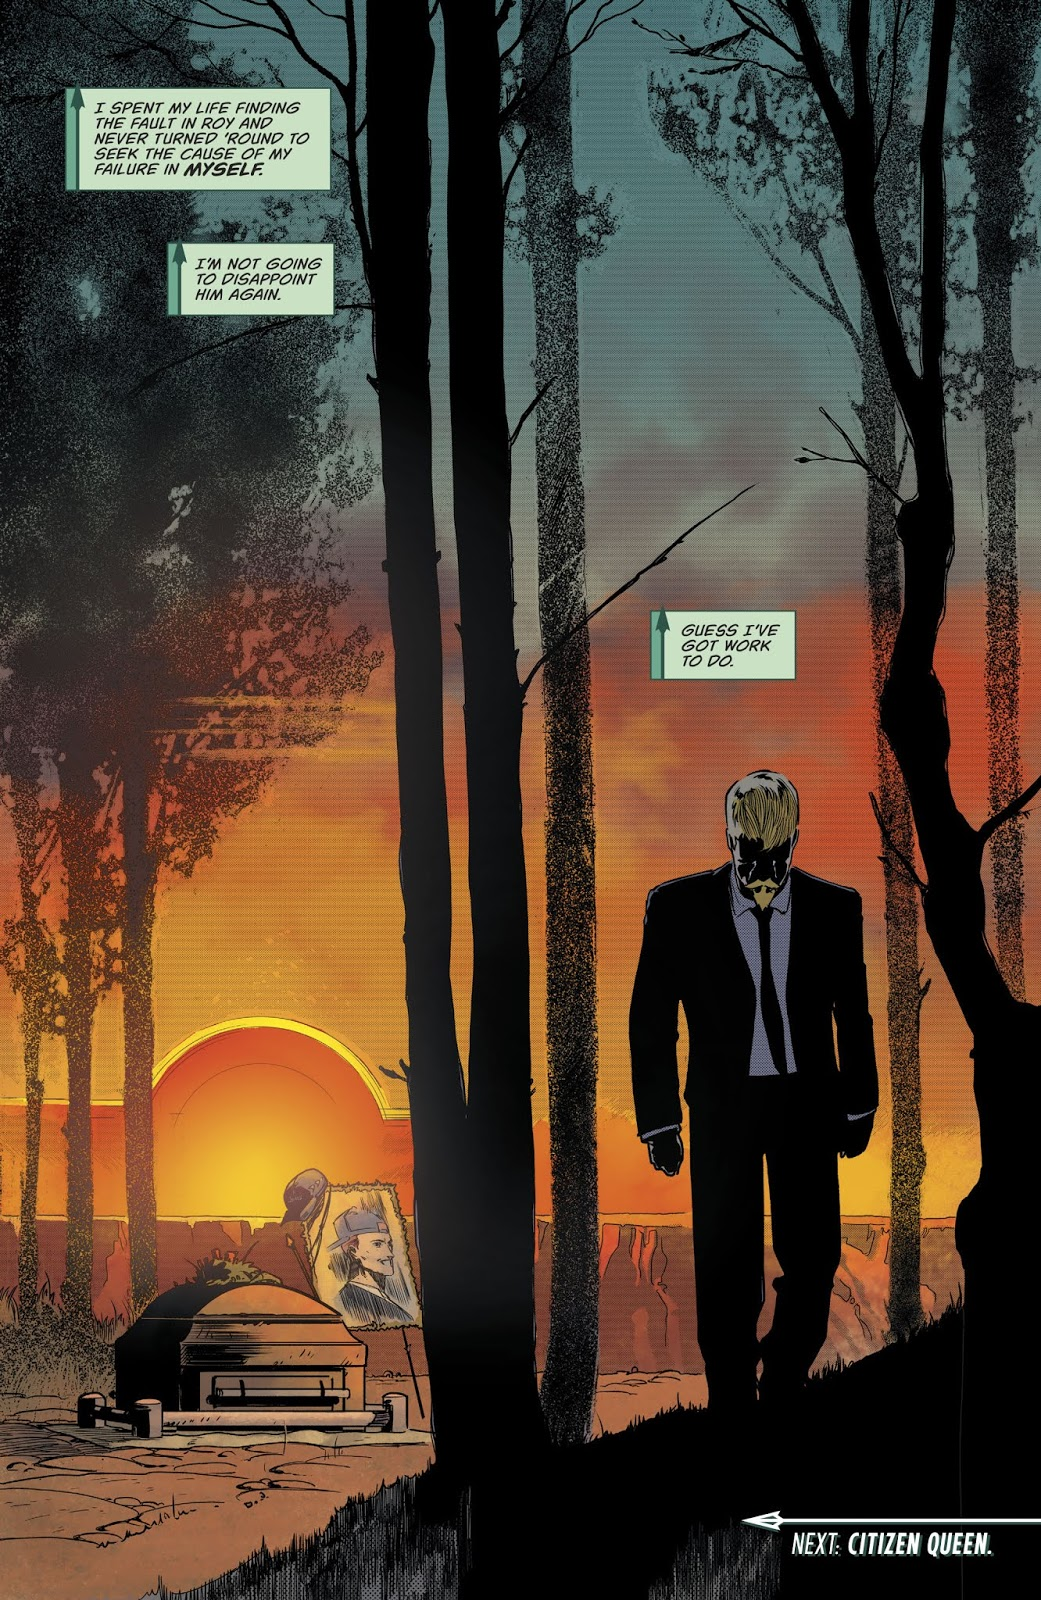 Oliver Queen (Green Arrow Vol. 6 #45)